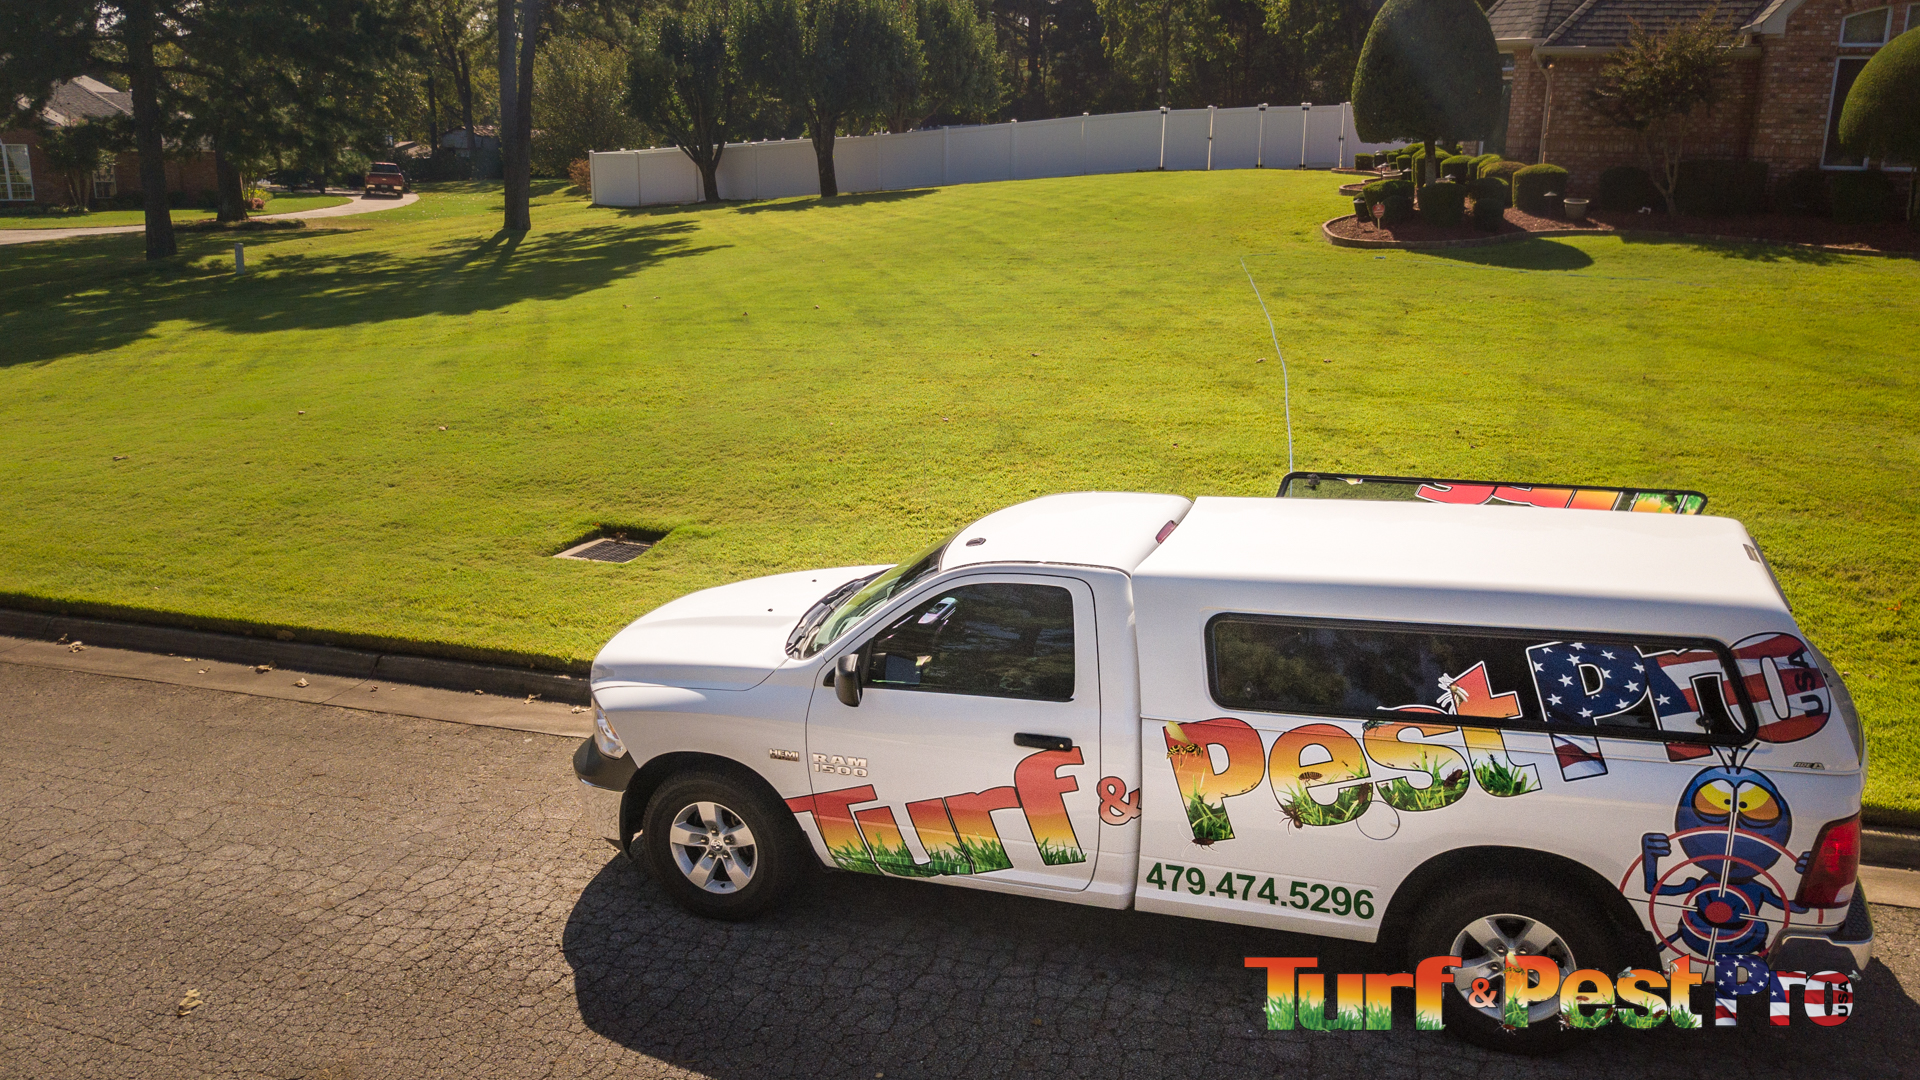 Turf & Pest Pro USA Lawn Care